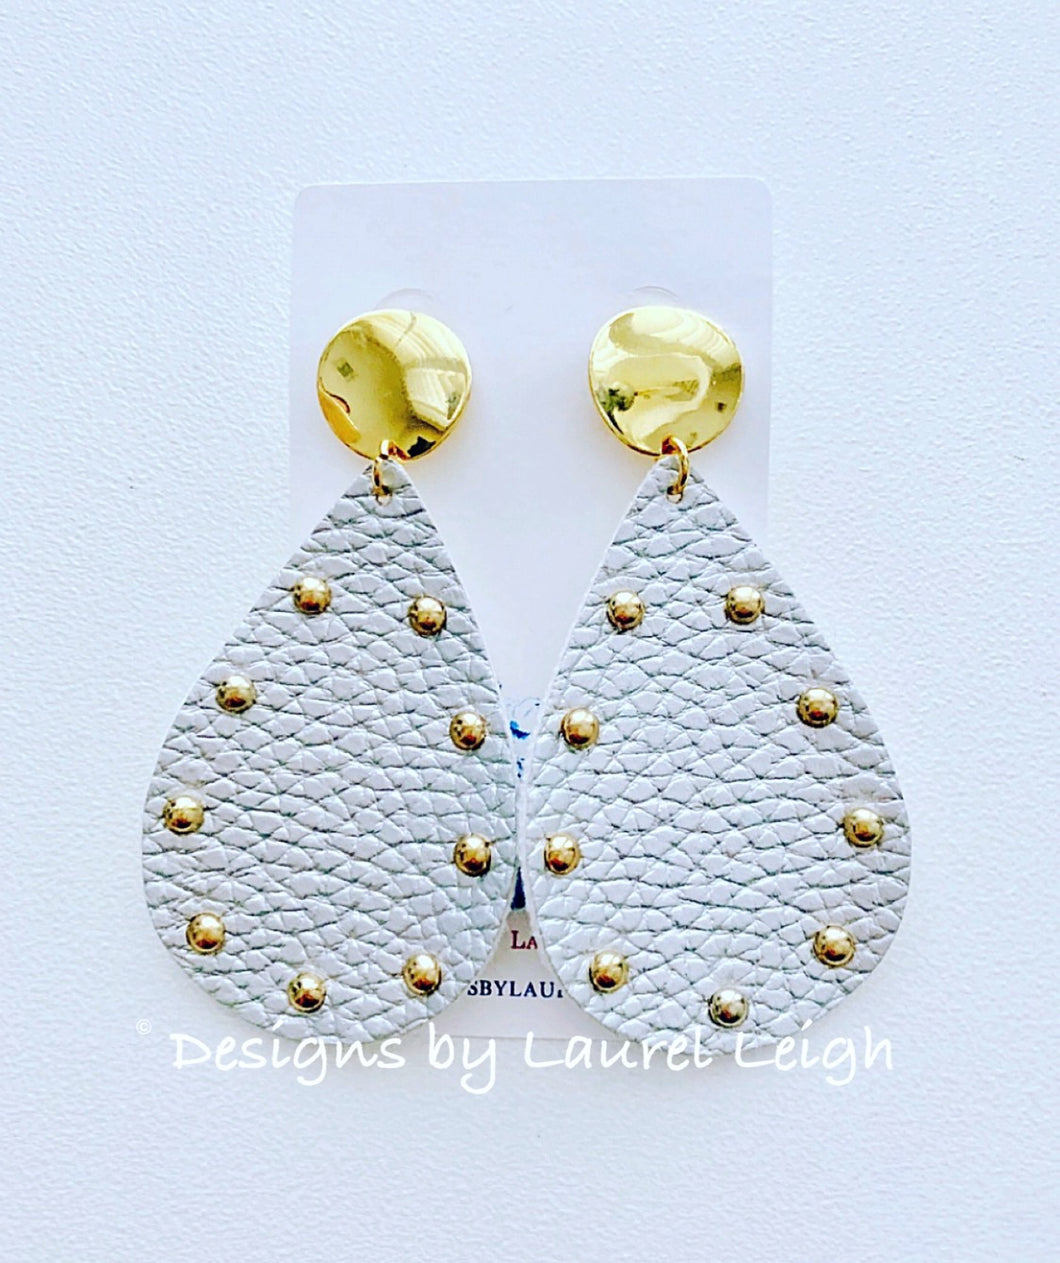 Silver and Gold Two-tone Faux Leather Studded Statement Earrings - Ginger jar